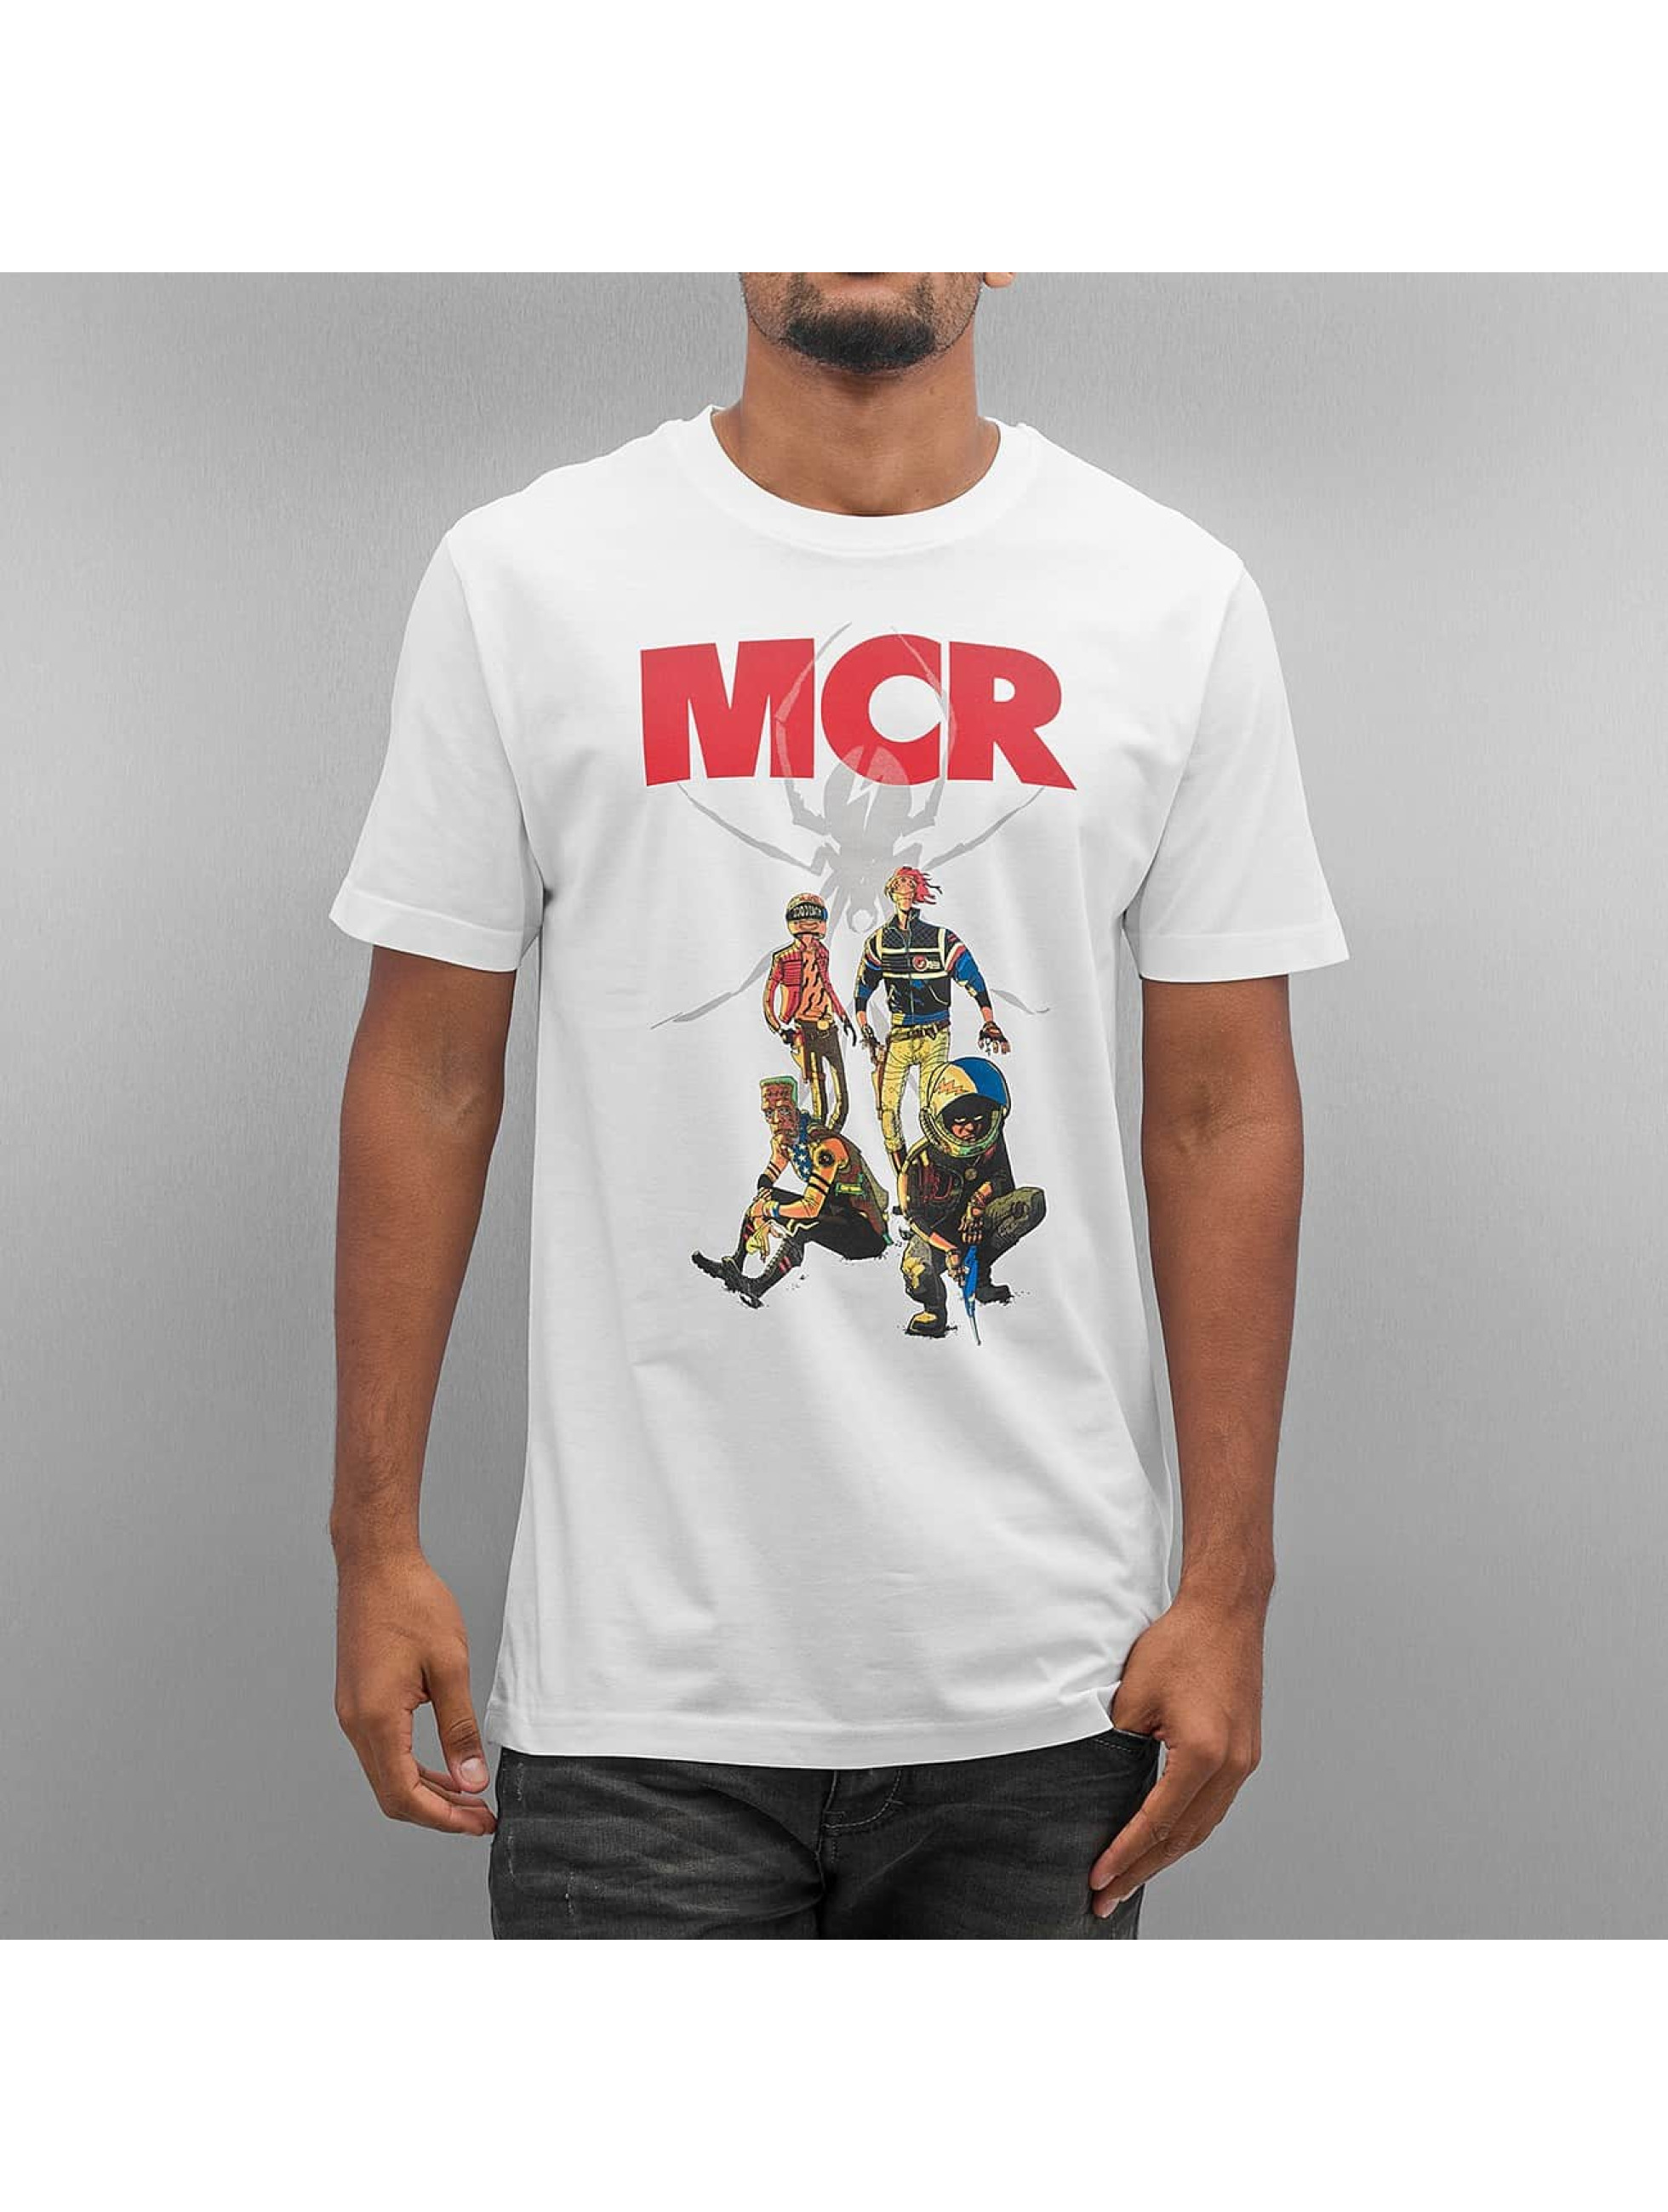 Mister Tee T-Shirty MY Chemical Romance Killjoys Pinup bialy